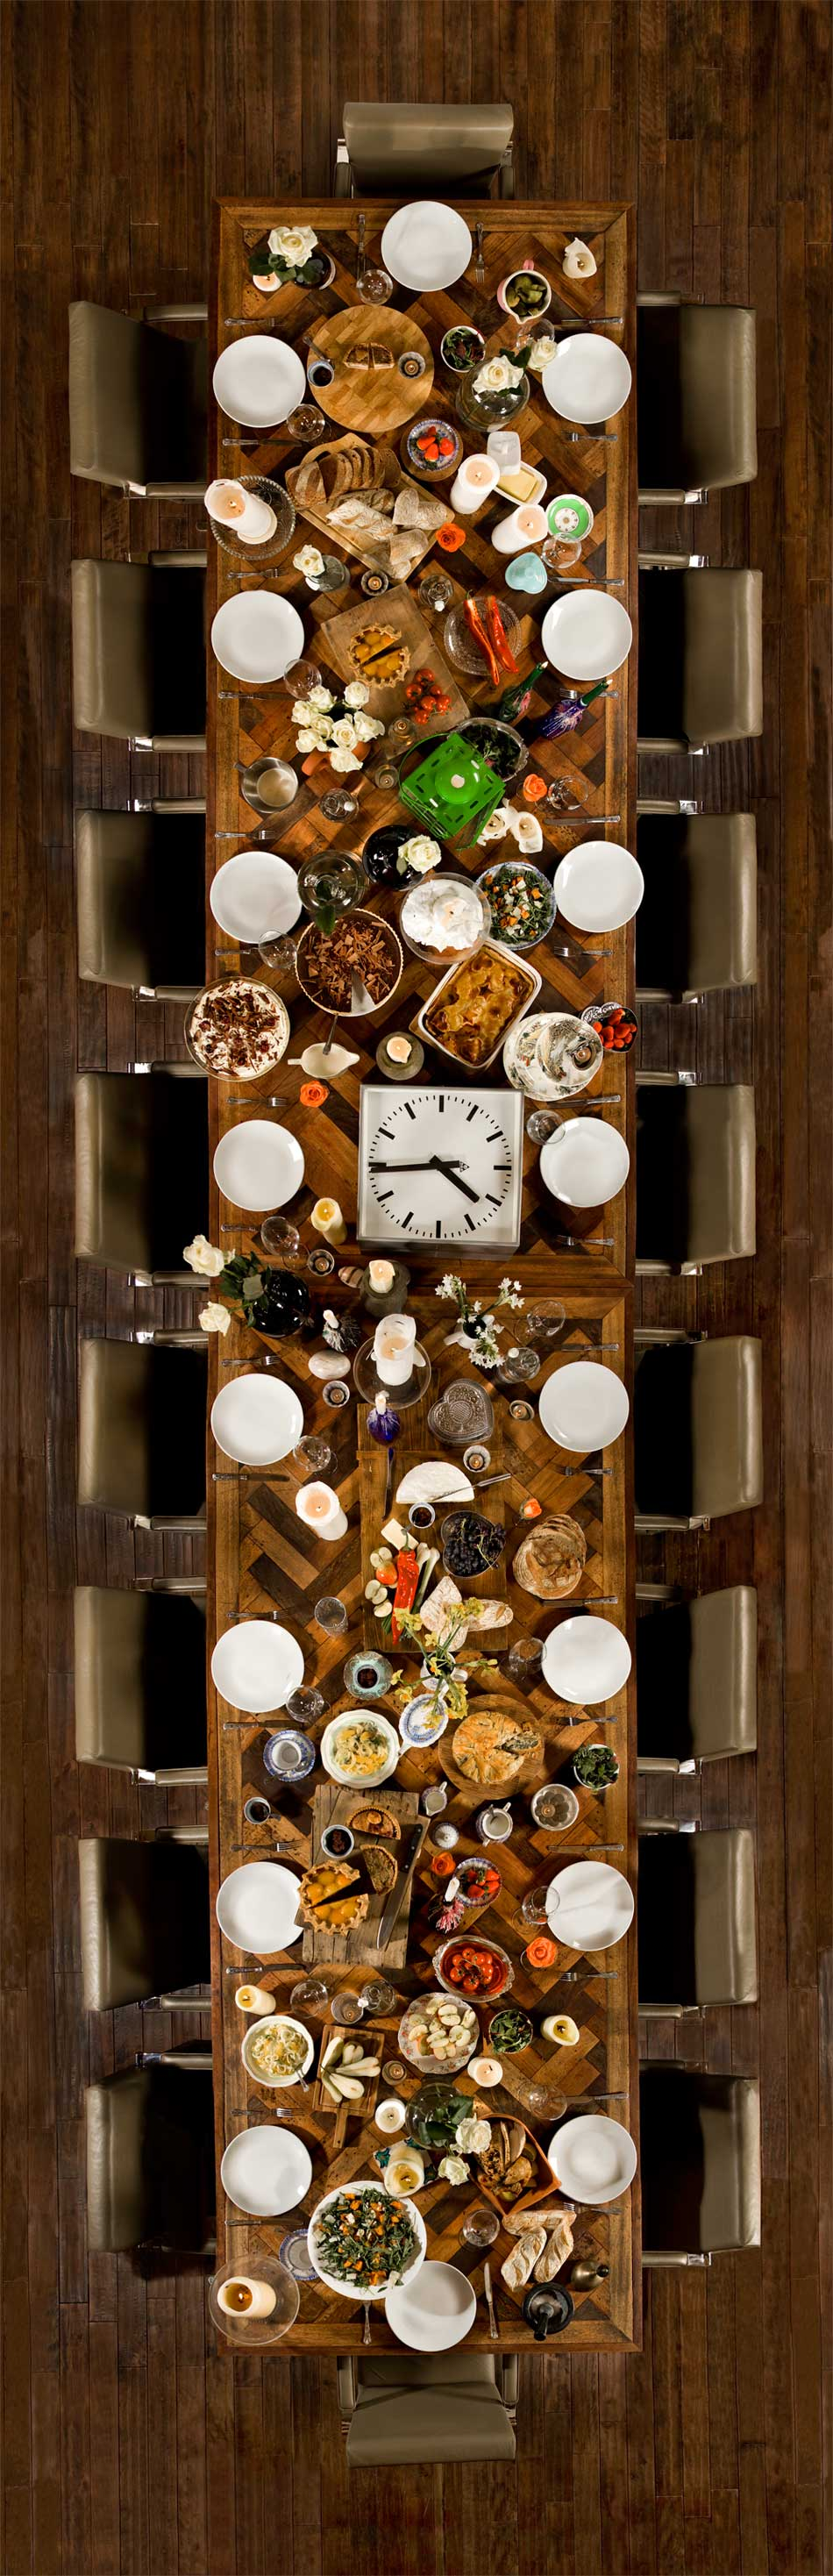 The Chimney House & Coco Catering's feasting style 家具